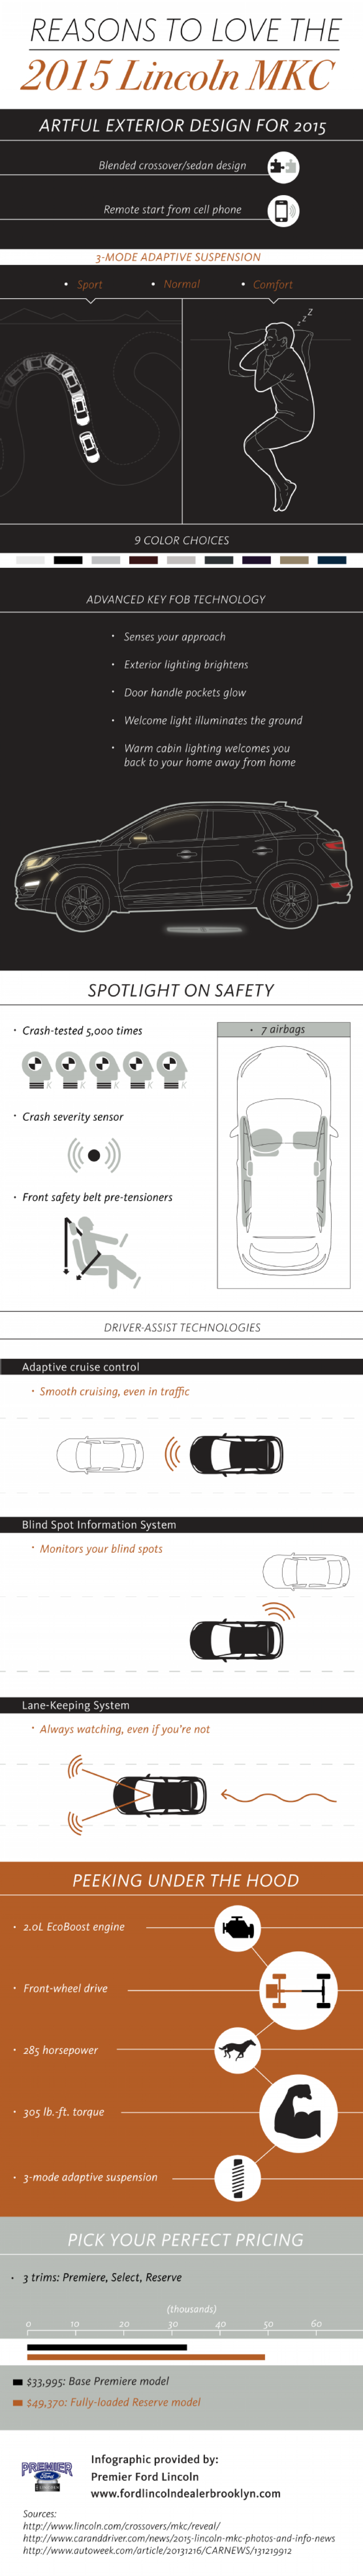 Reasons to Love the 2015 Lincoln MKC Infographic